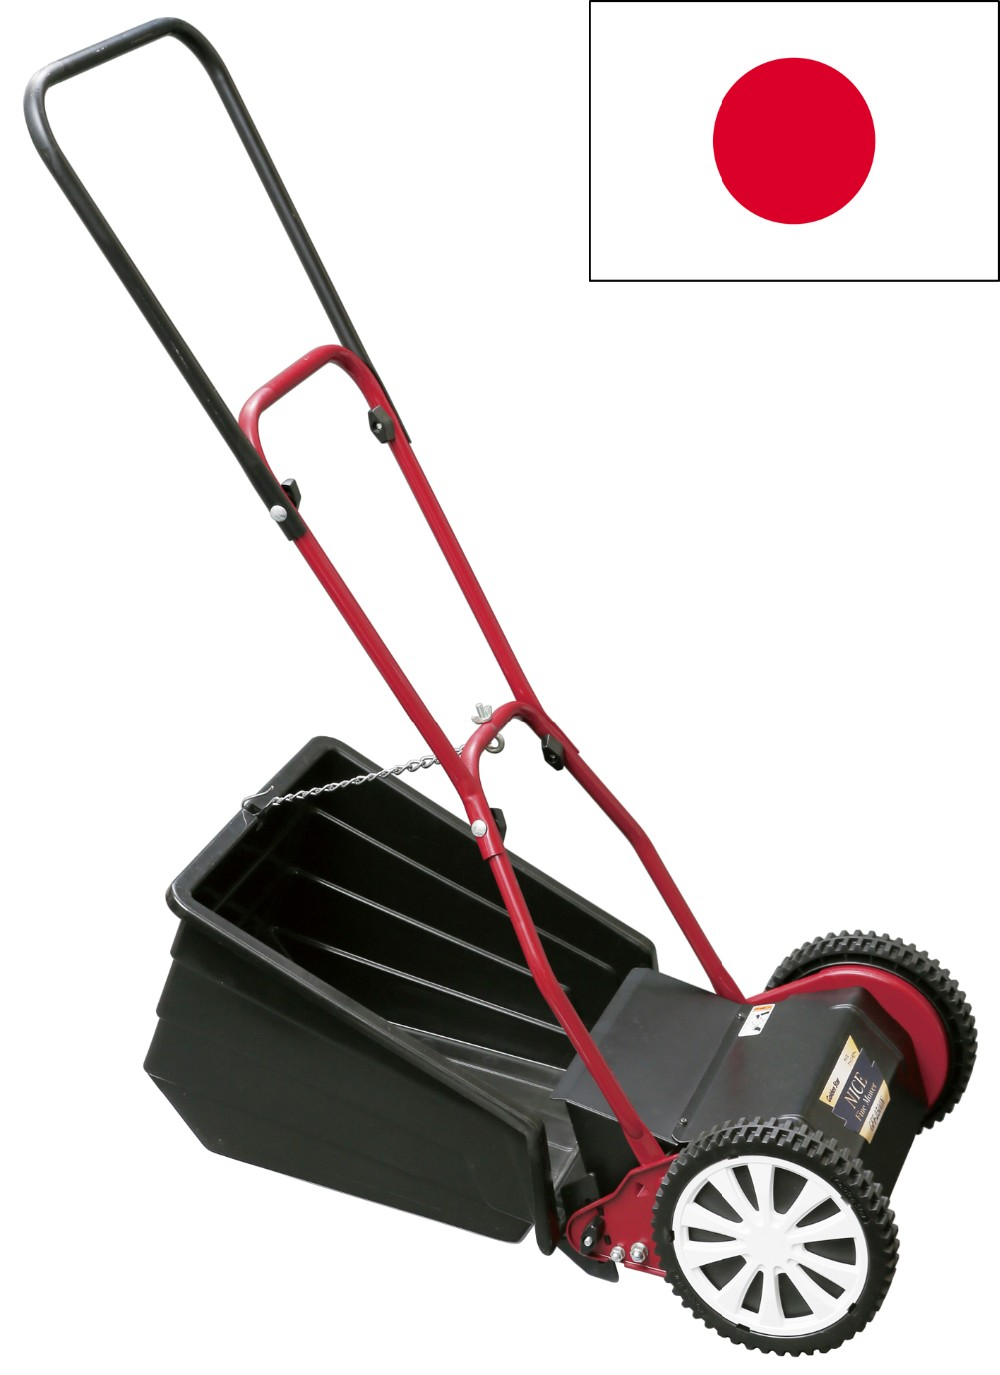 Durable and High quality lawn mower at reasonable prices , OEM available